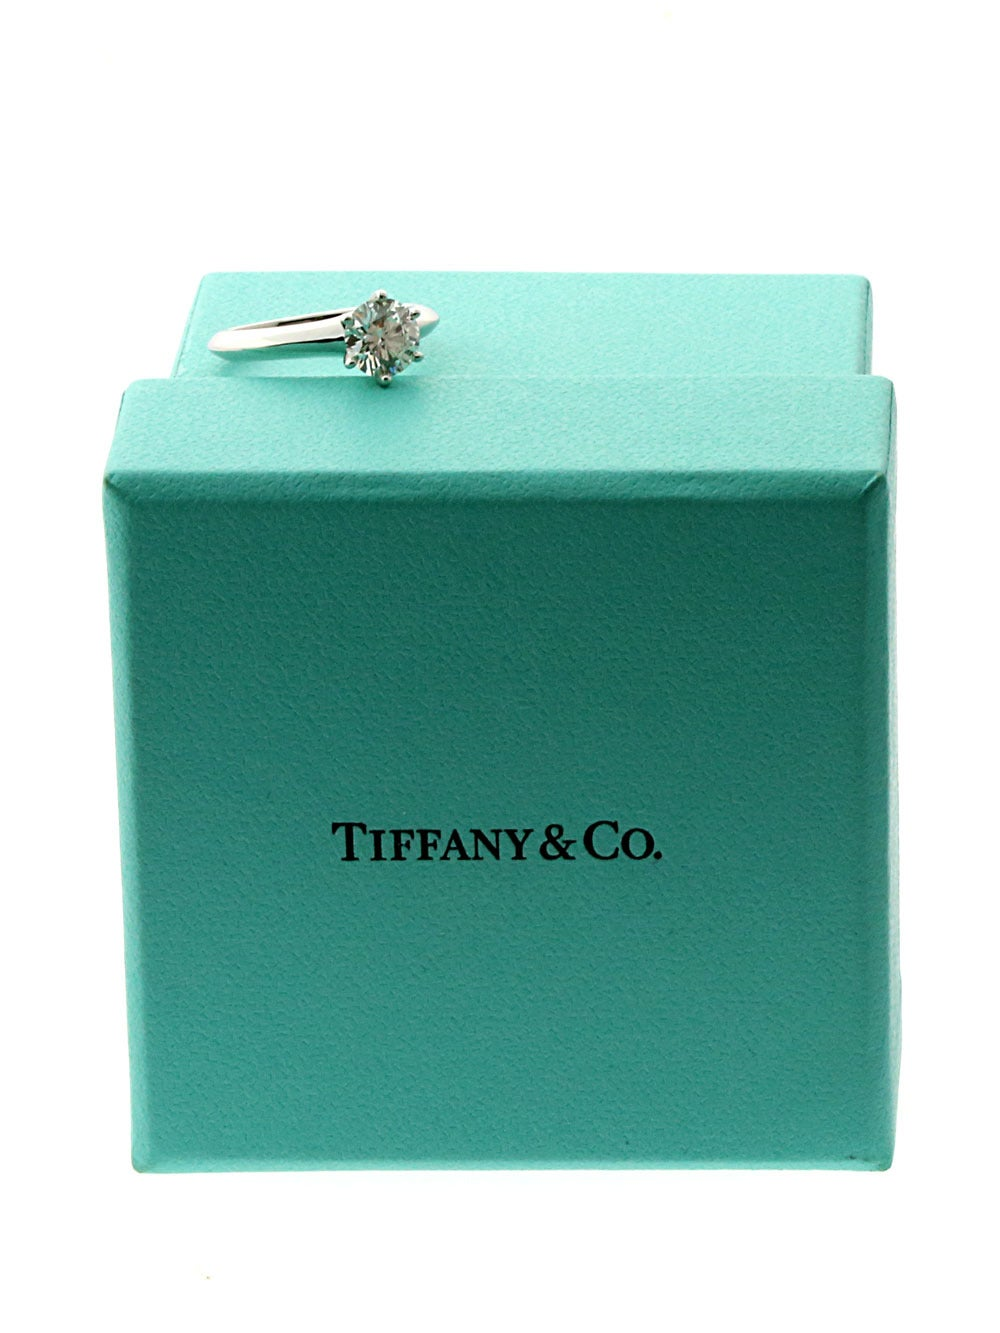 Tiffany & Co. Diamond Platinum Solitaire Ring In New Condition For Sale In Feasterville, PA